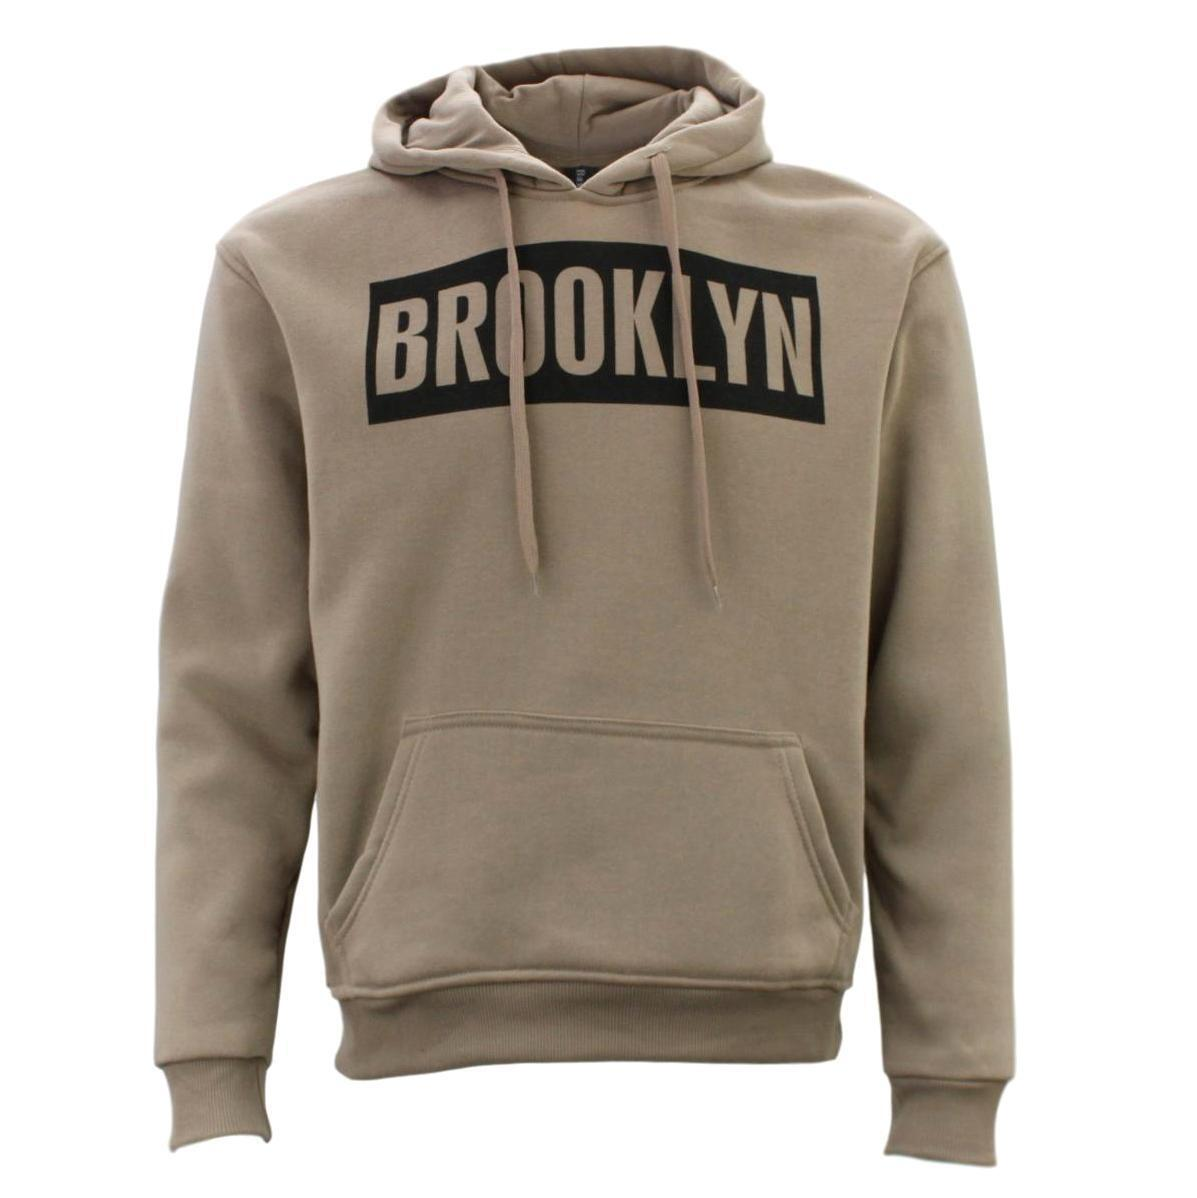 Adult-Men-039-s-Unisex-Hoodie-Hooded-Jumper-Pullover-Women-039-s-Sweater-BROOKLYN thumbnail 25